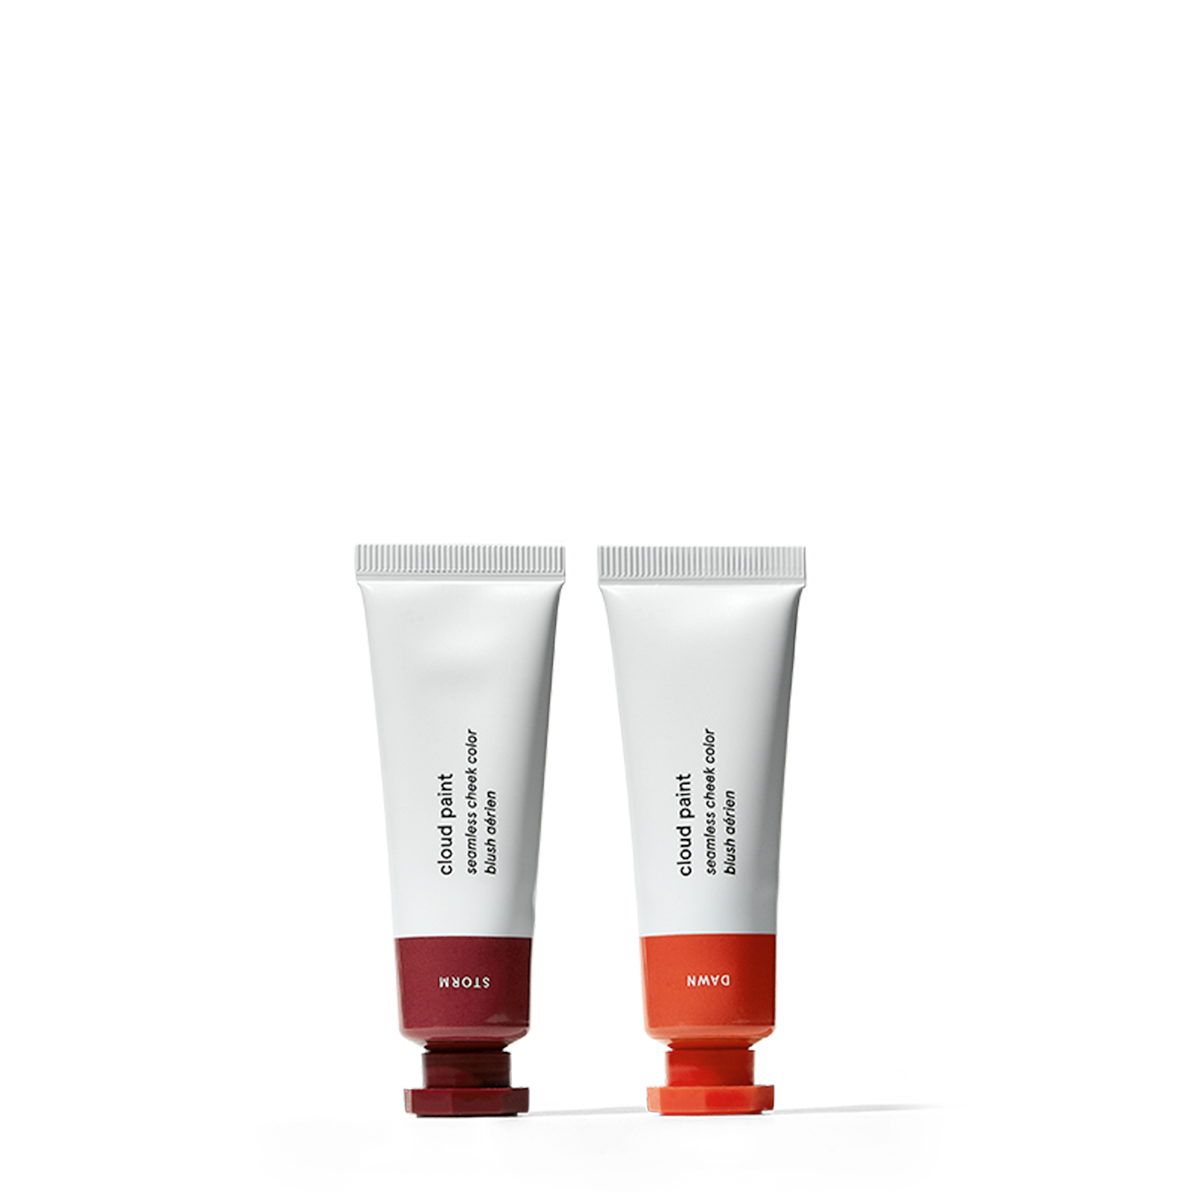 Glossier Cloud Paint Duo, Choose 2 shades of our buildable gel-cream blush, Apply to cheeks for a healthy, flushed glow